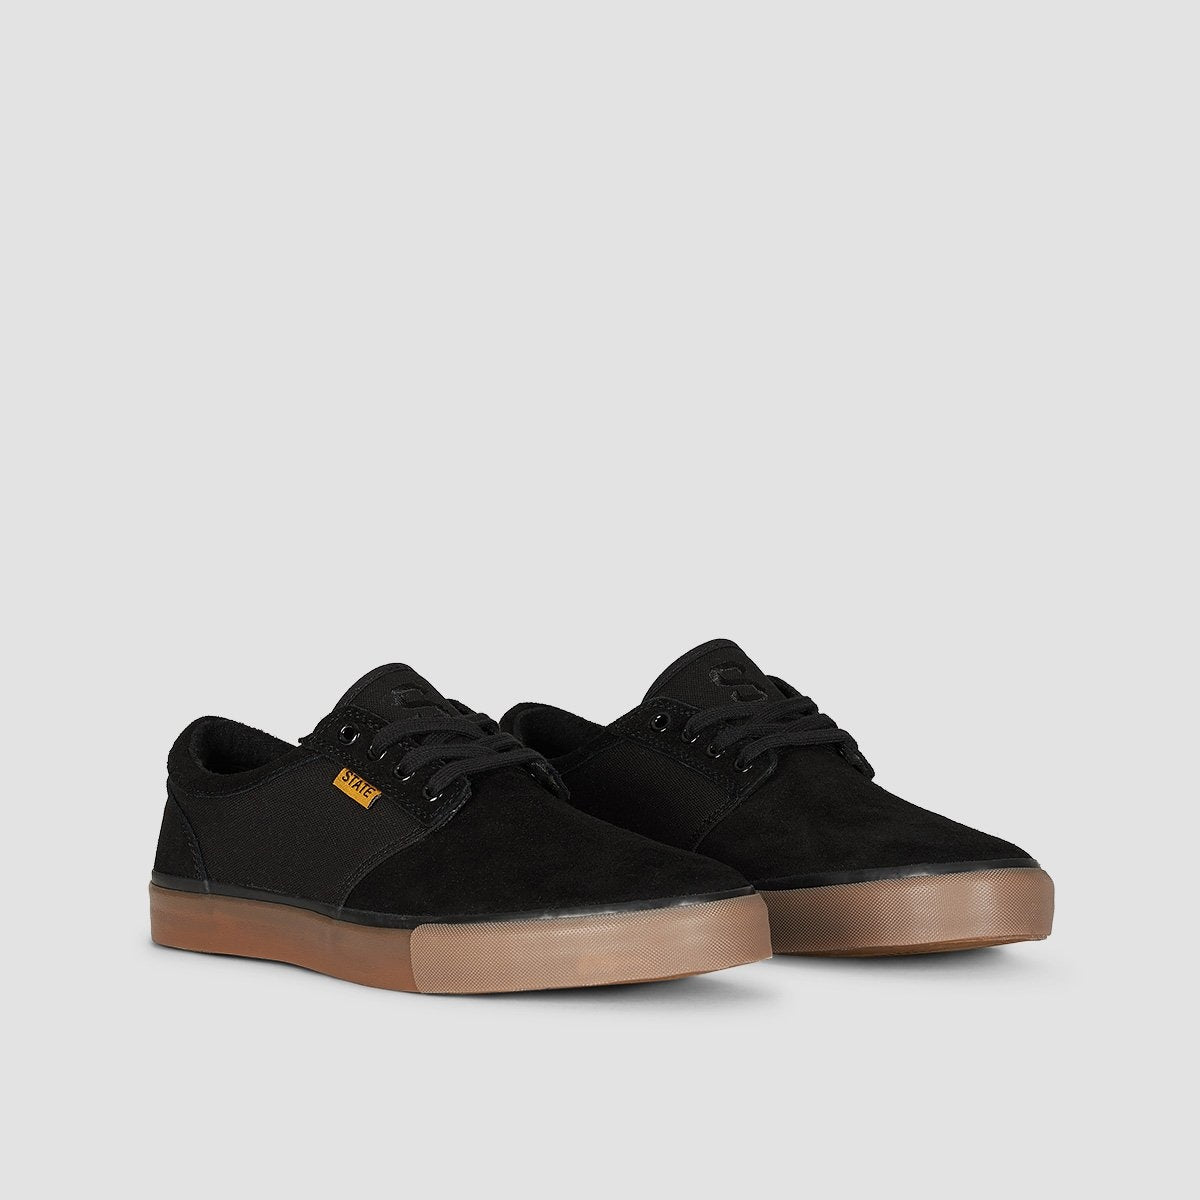 State Elgin Black/Gum - Footwear